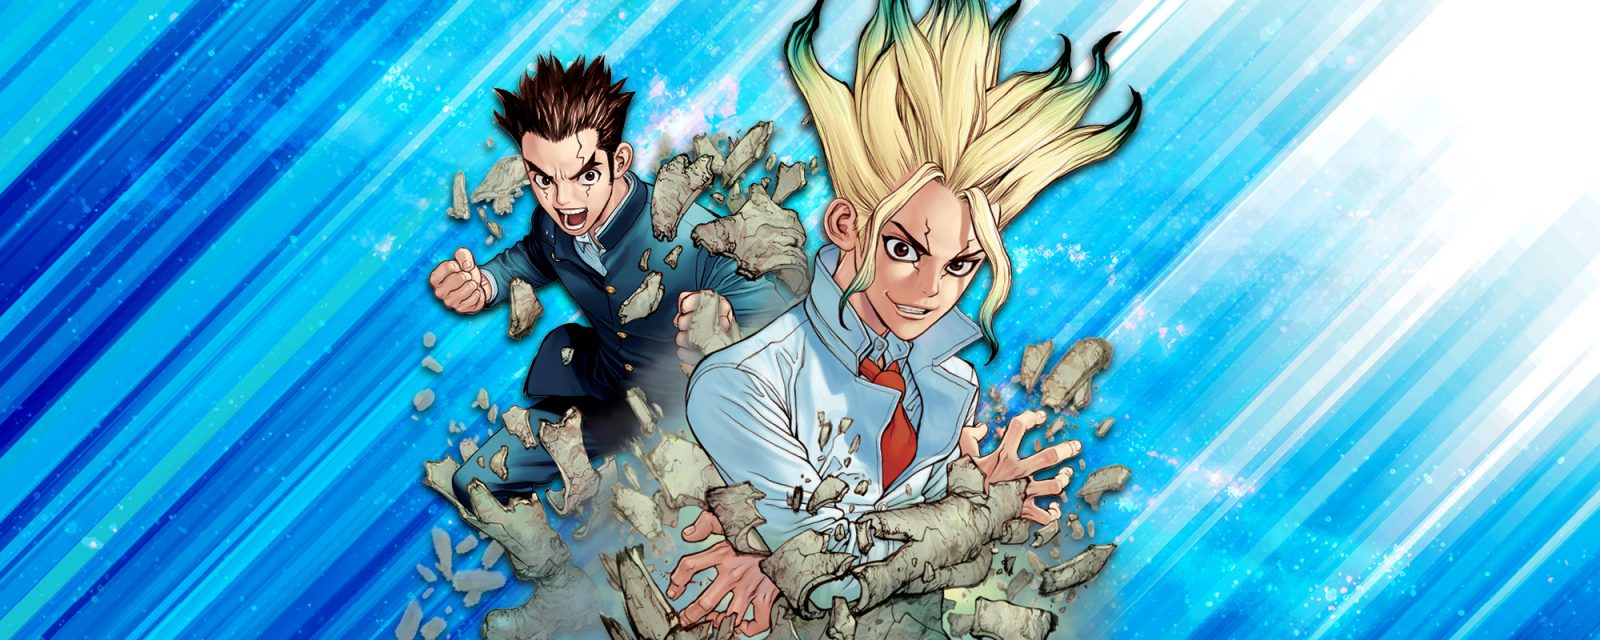 Dr.Stone Chapter 147